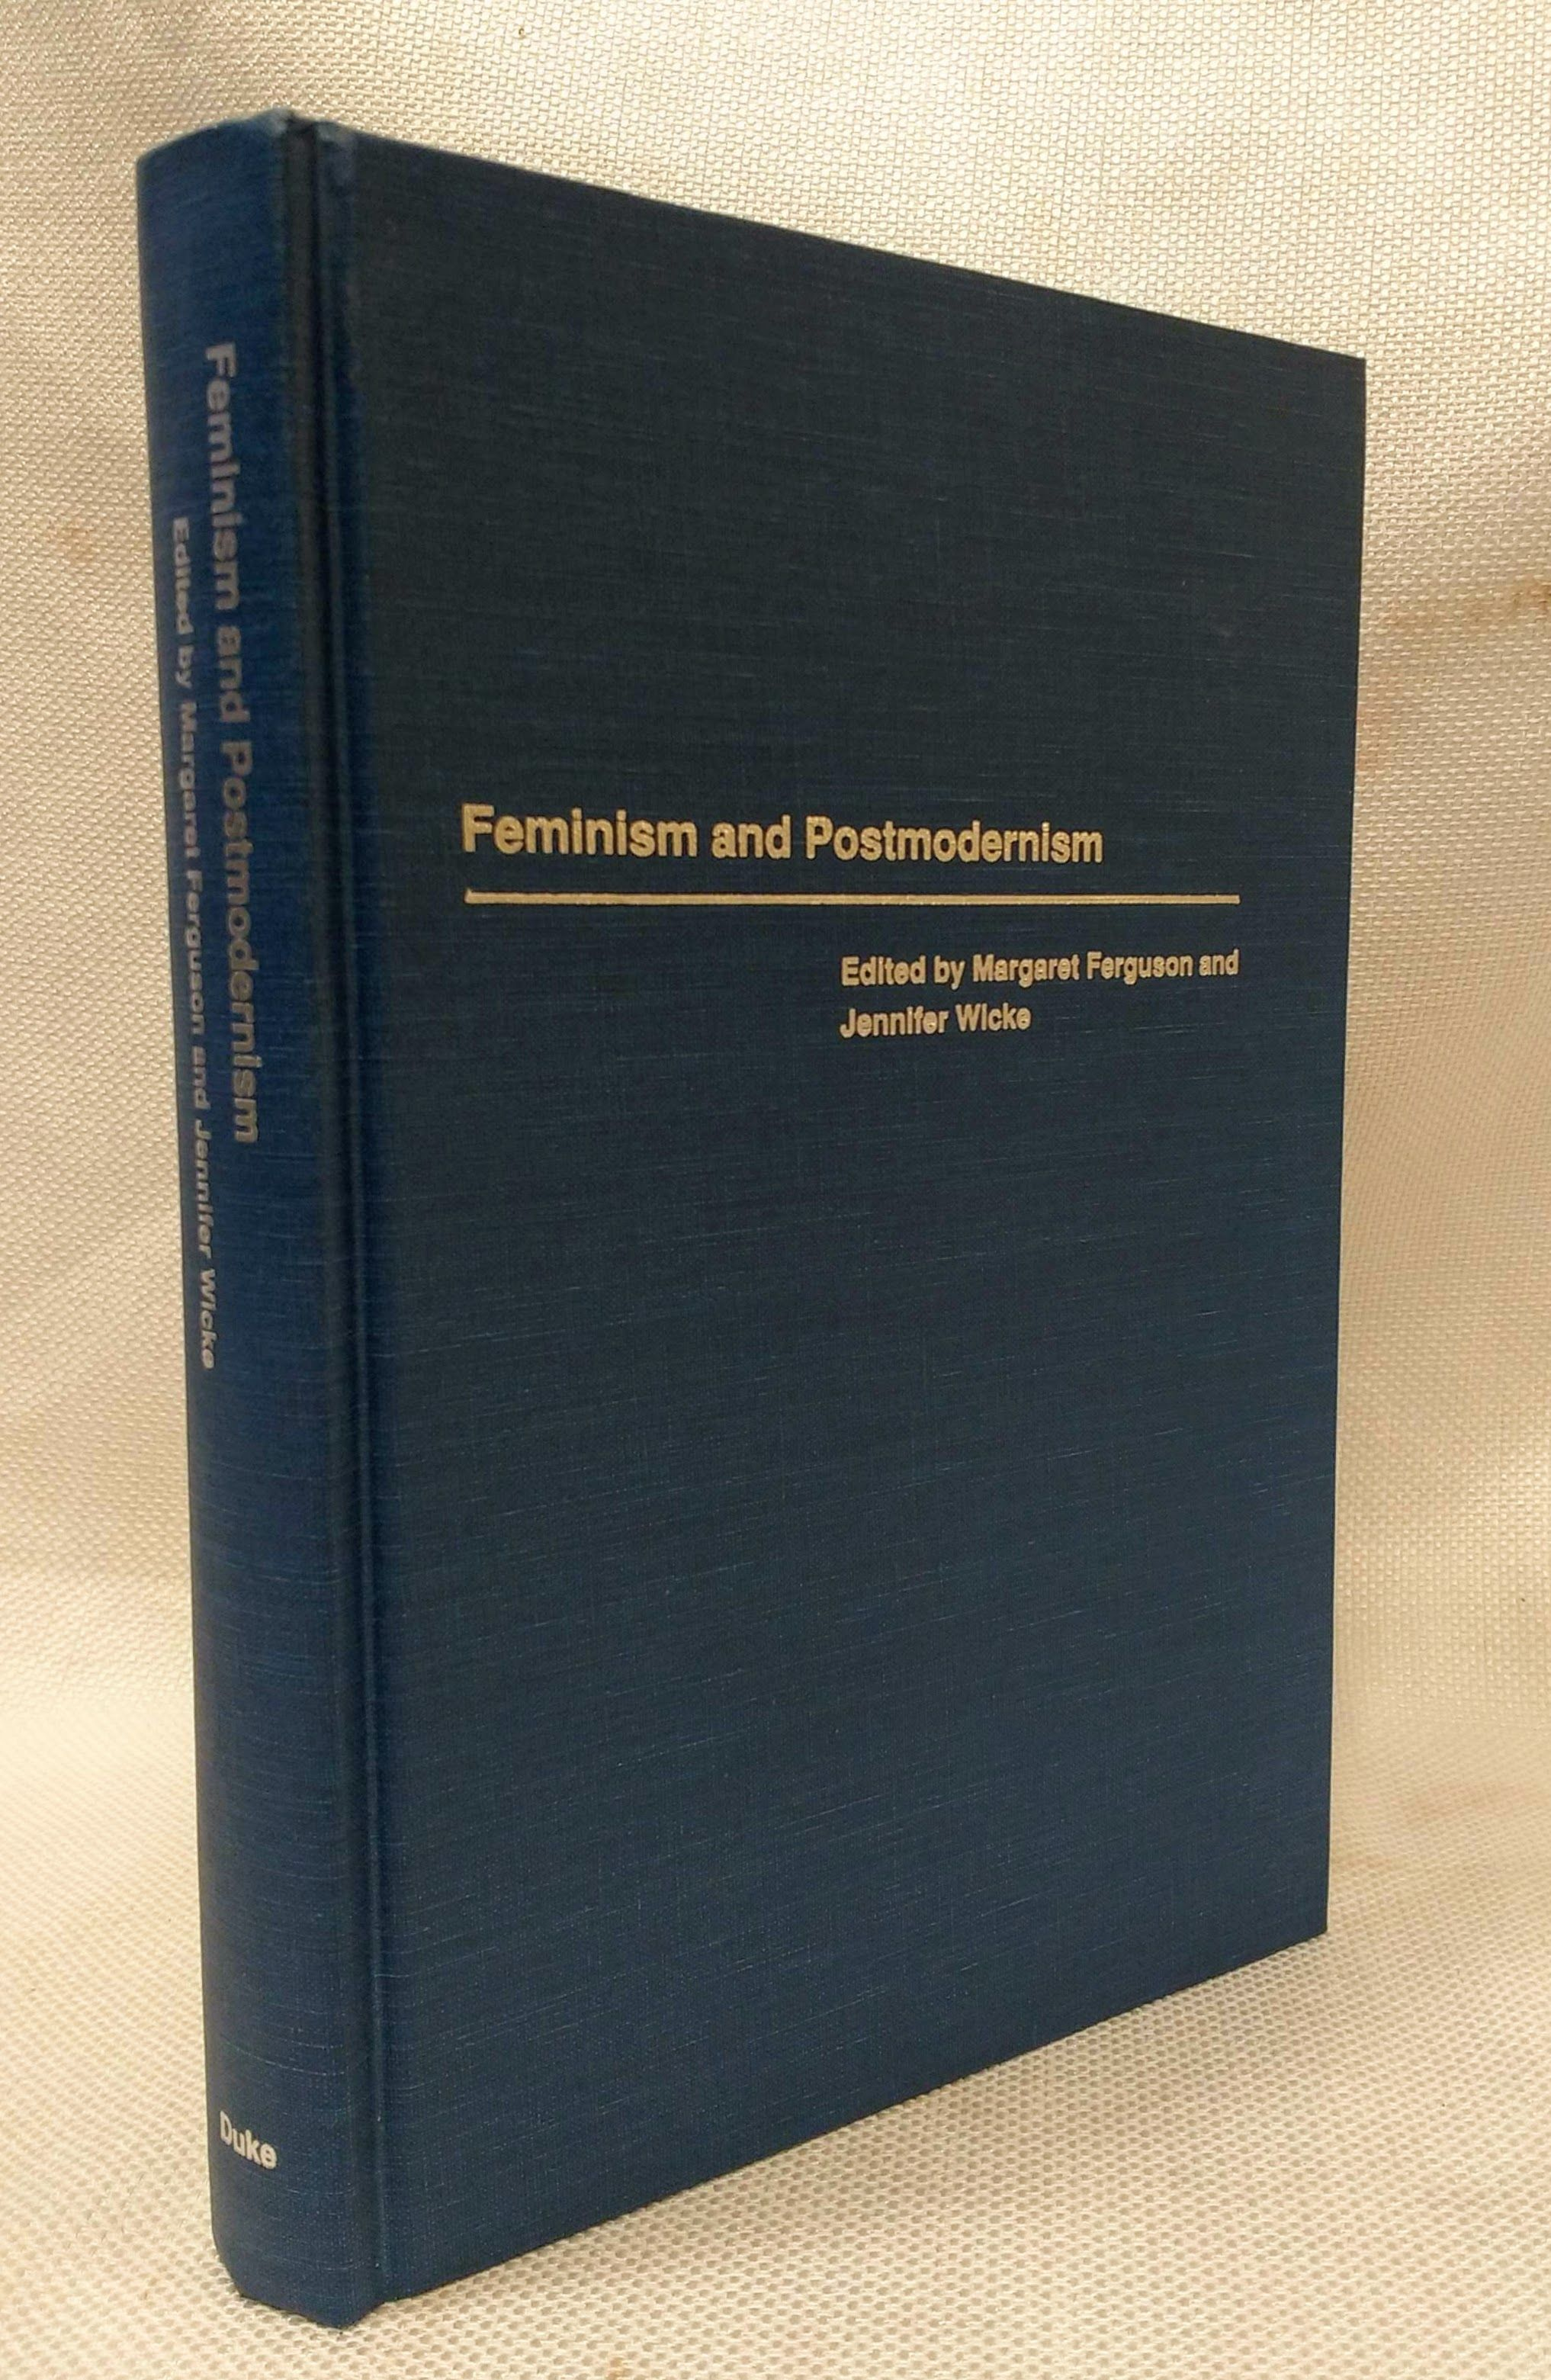 Feminism and Postmodernism (A Boundary 2 Book), Ferguson, Margaret [Editor]; Wicke, Jennifer [Editor];